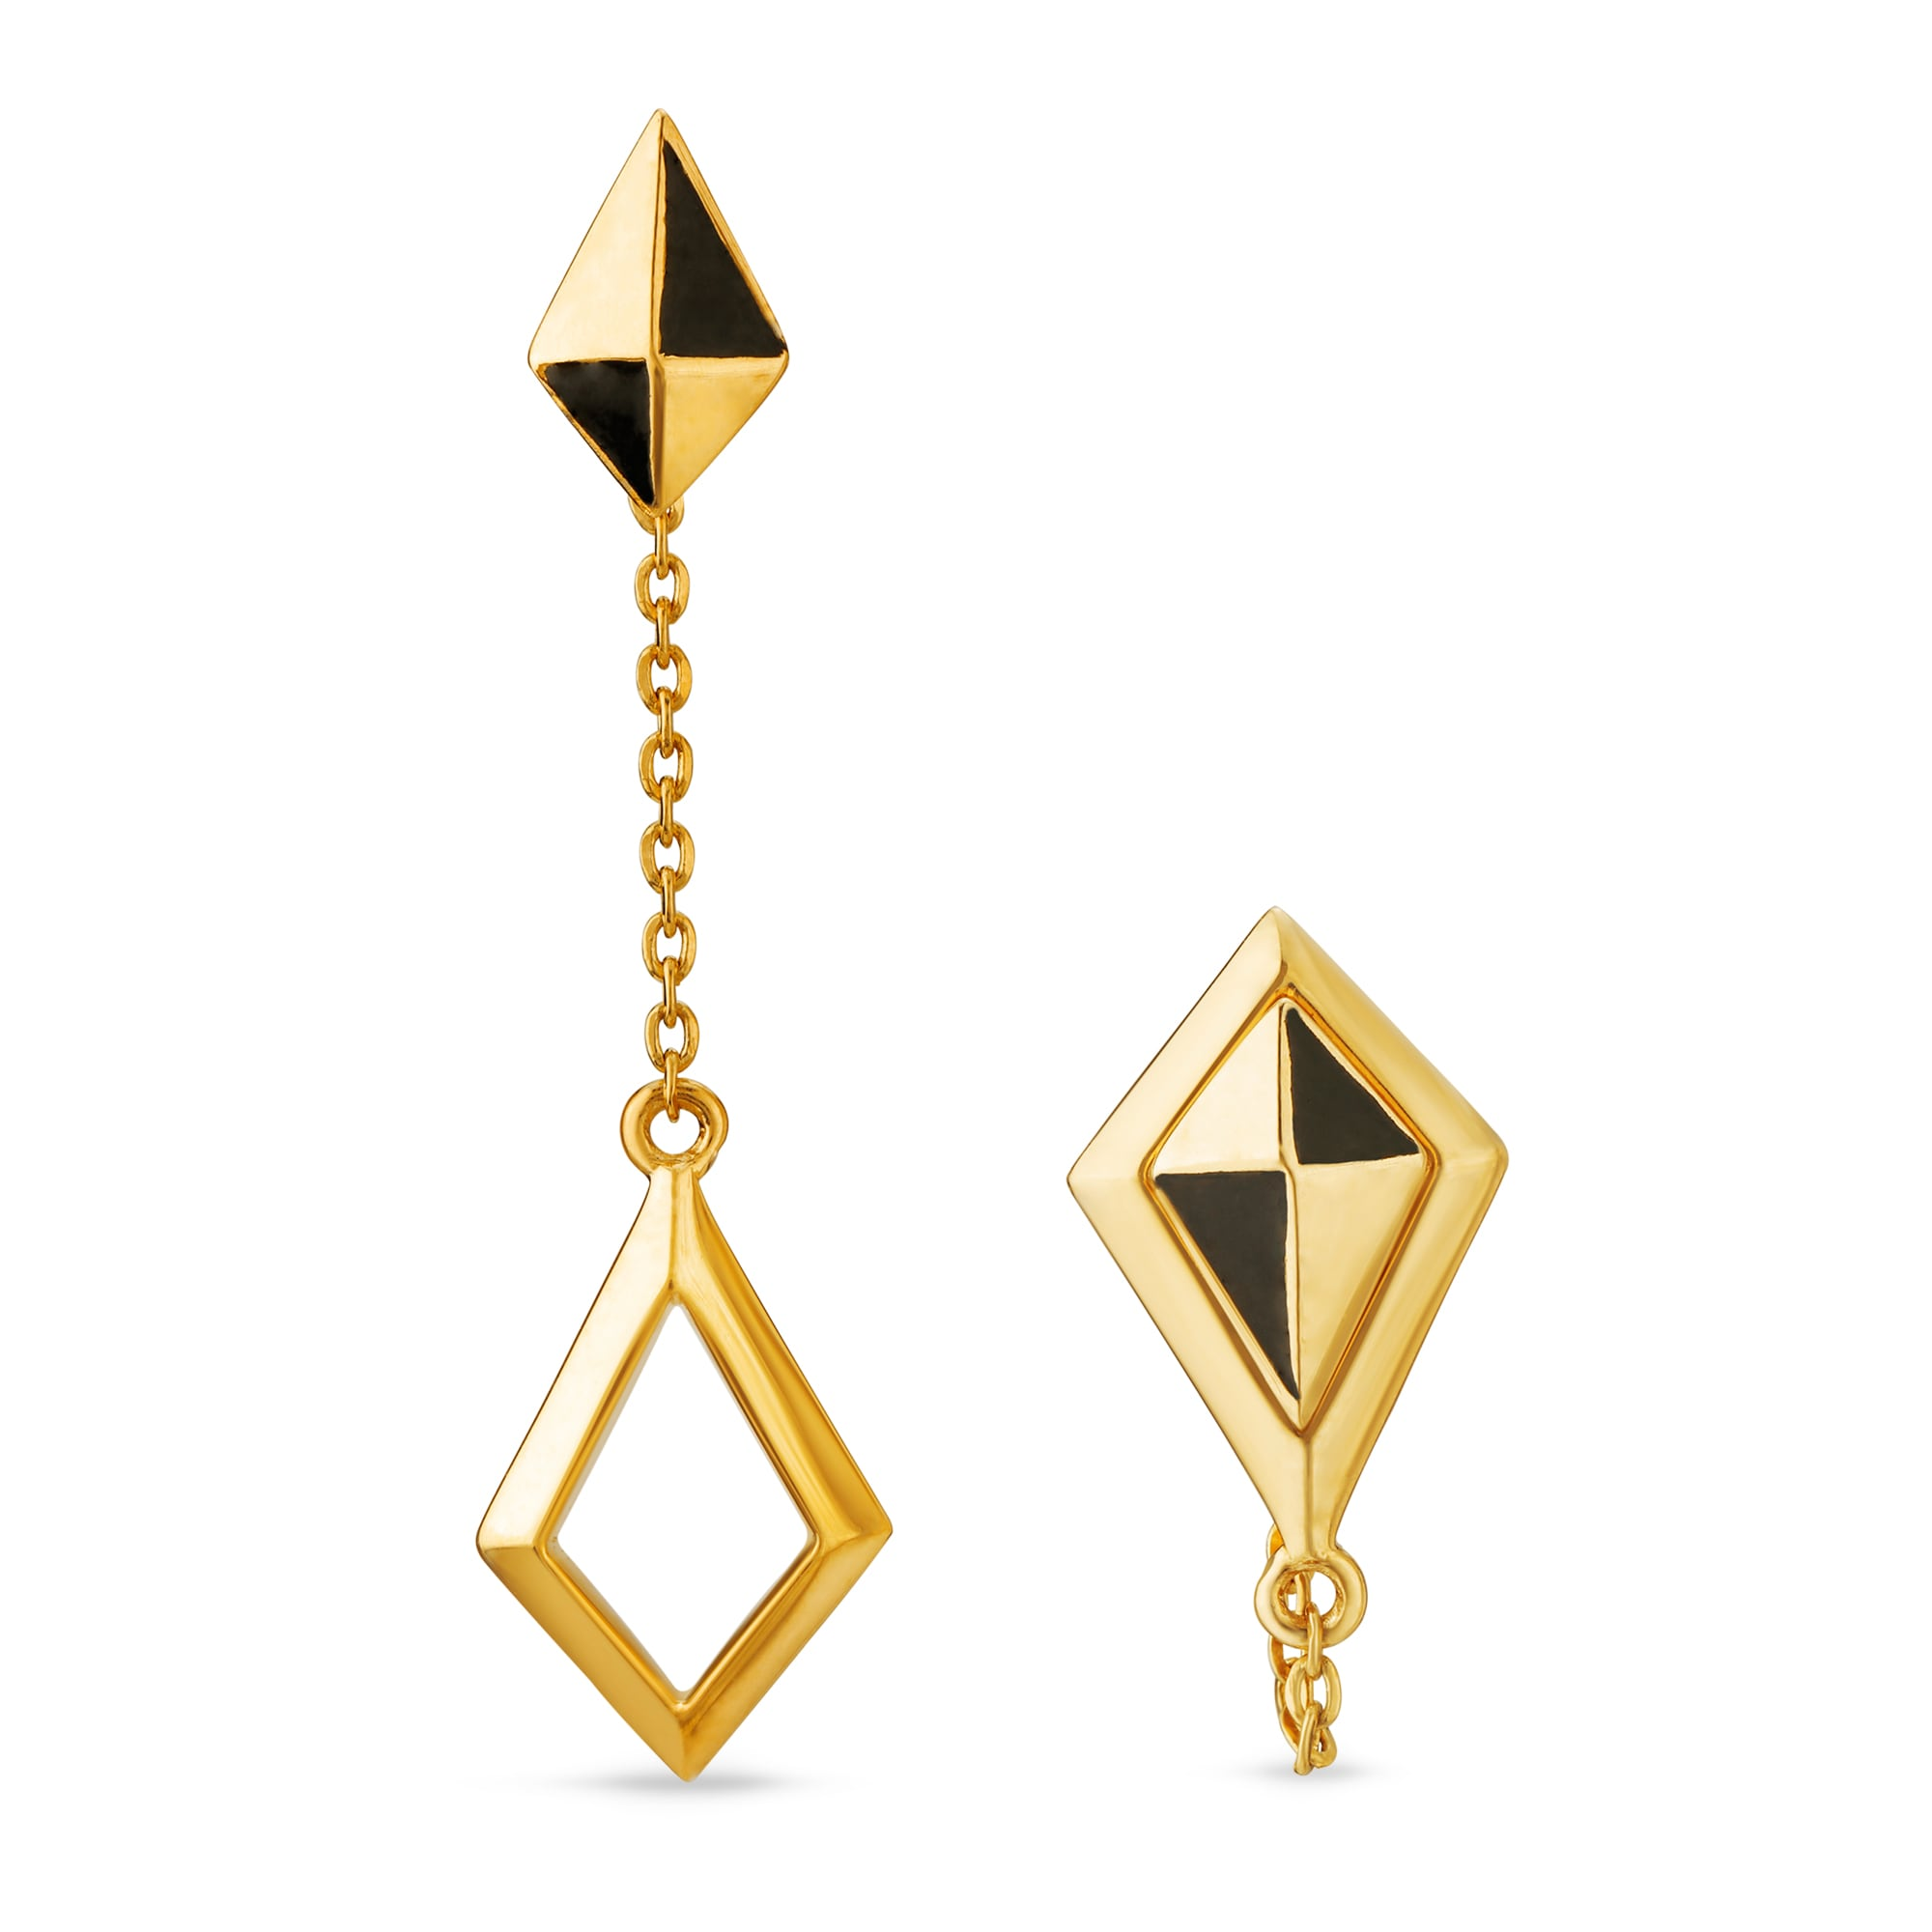 8da147133d094 Mia Multitaskers by Tanishq 14KT Yellow Gold Drop Earrings with  Diamond-Shaped Design